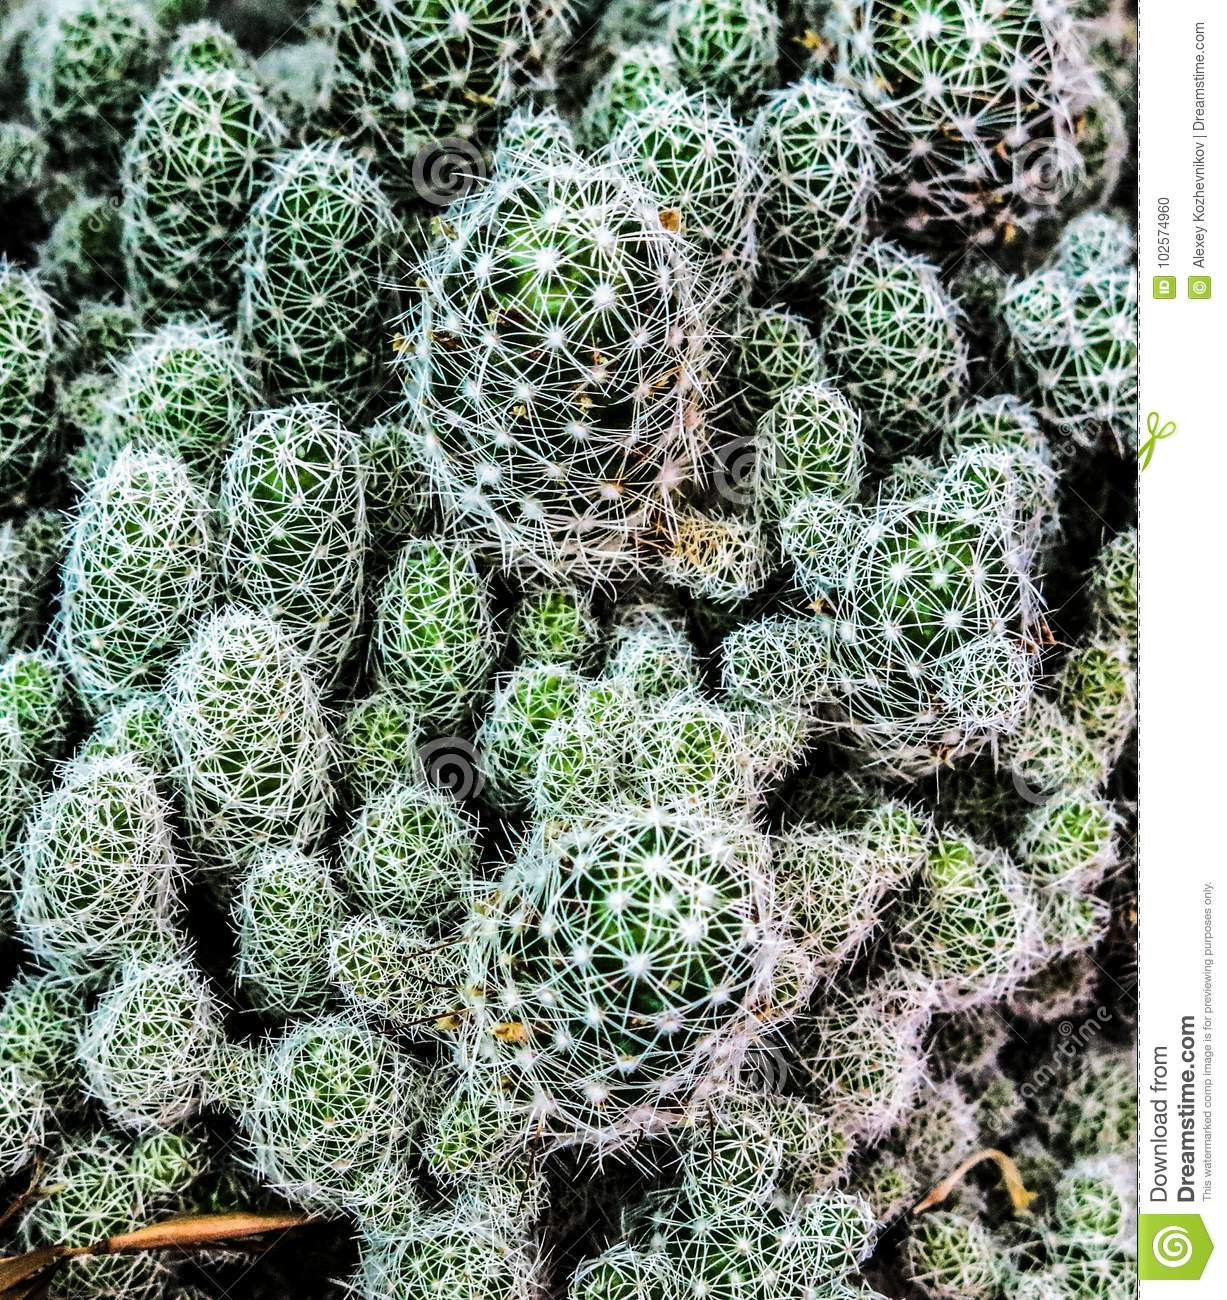 A thicket of cactus